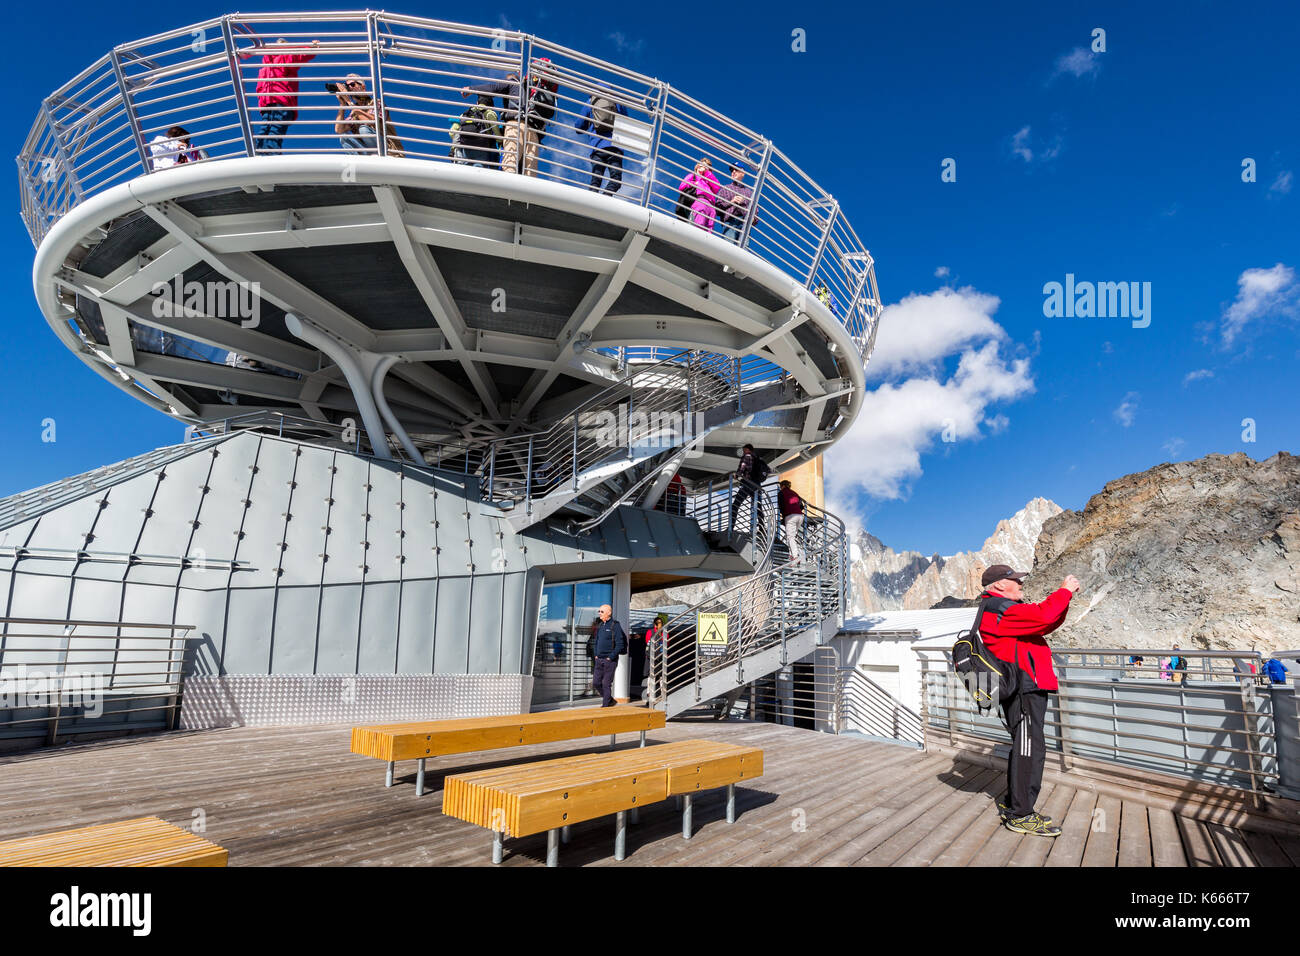 Punta Helbronner - Skyway Monte Bianco, Aosta Valley, Italy - Stock Image